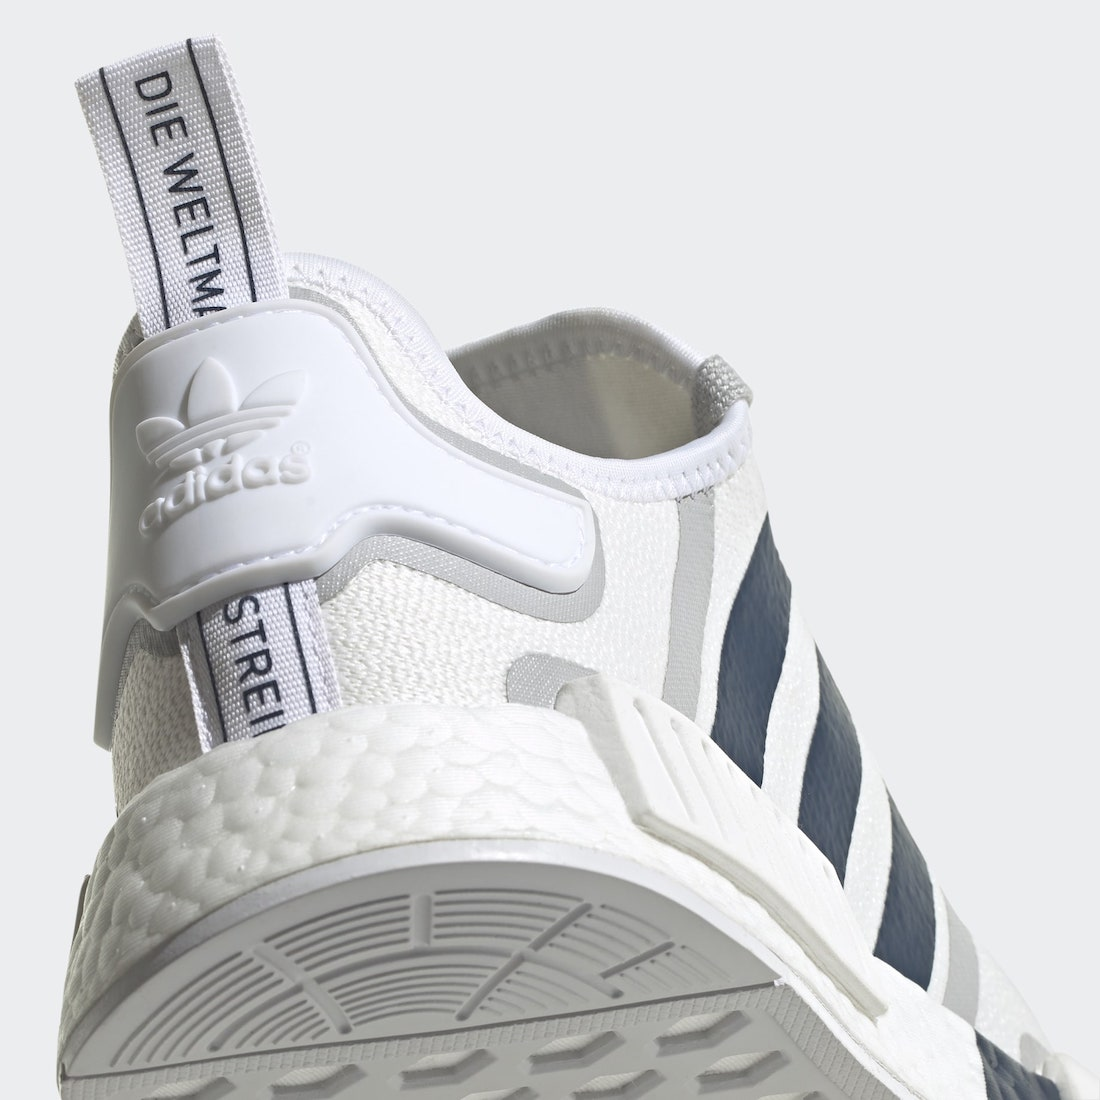 adidas NMD R1 White Crew Navy Grey G55576 Release Date